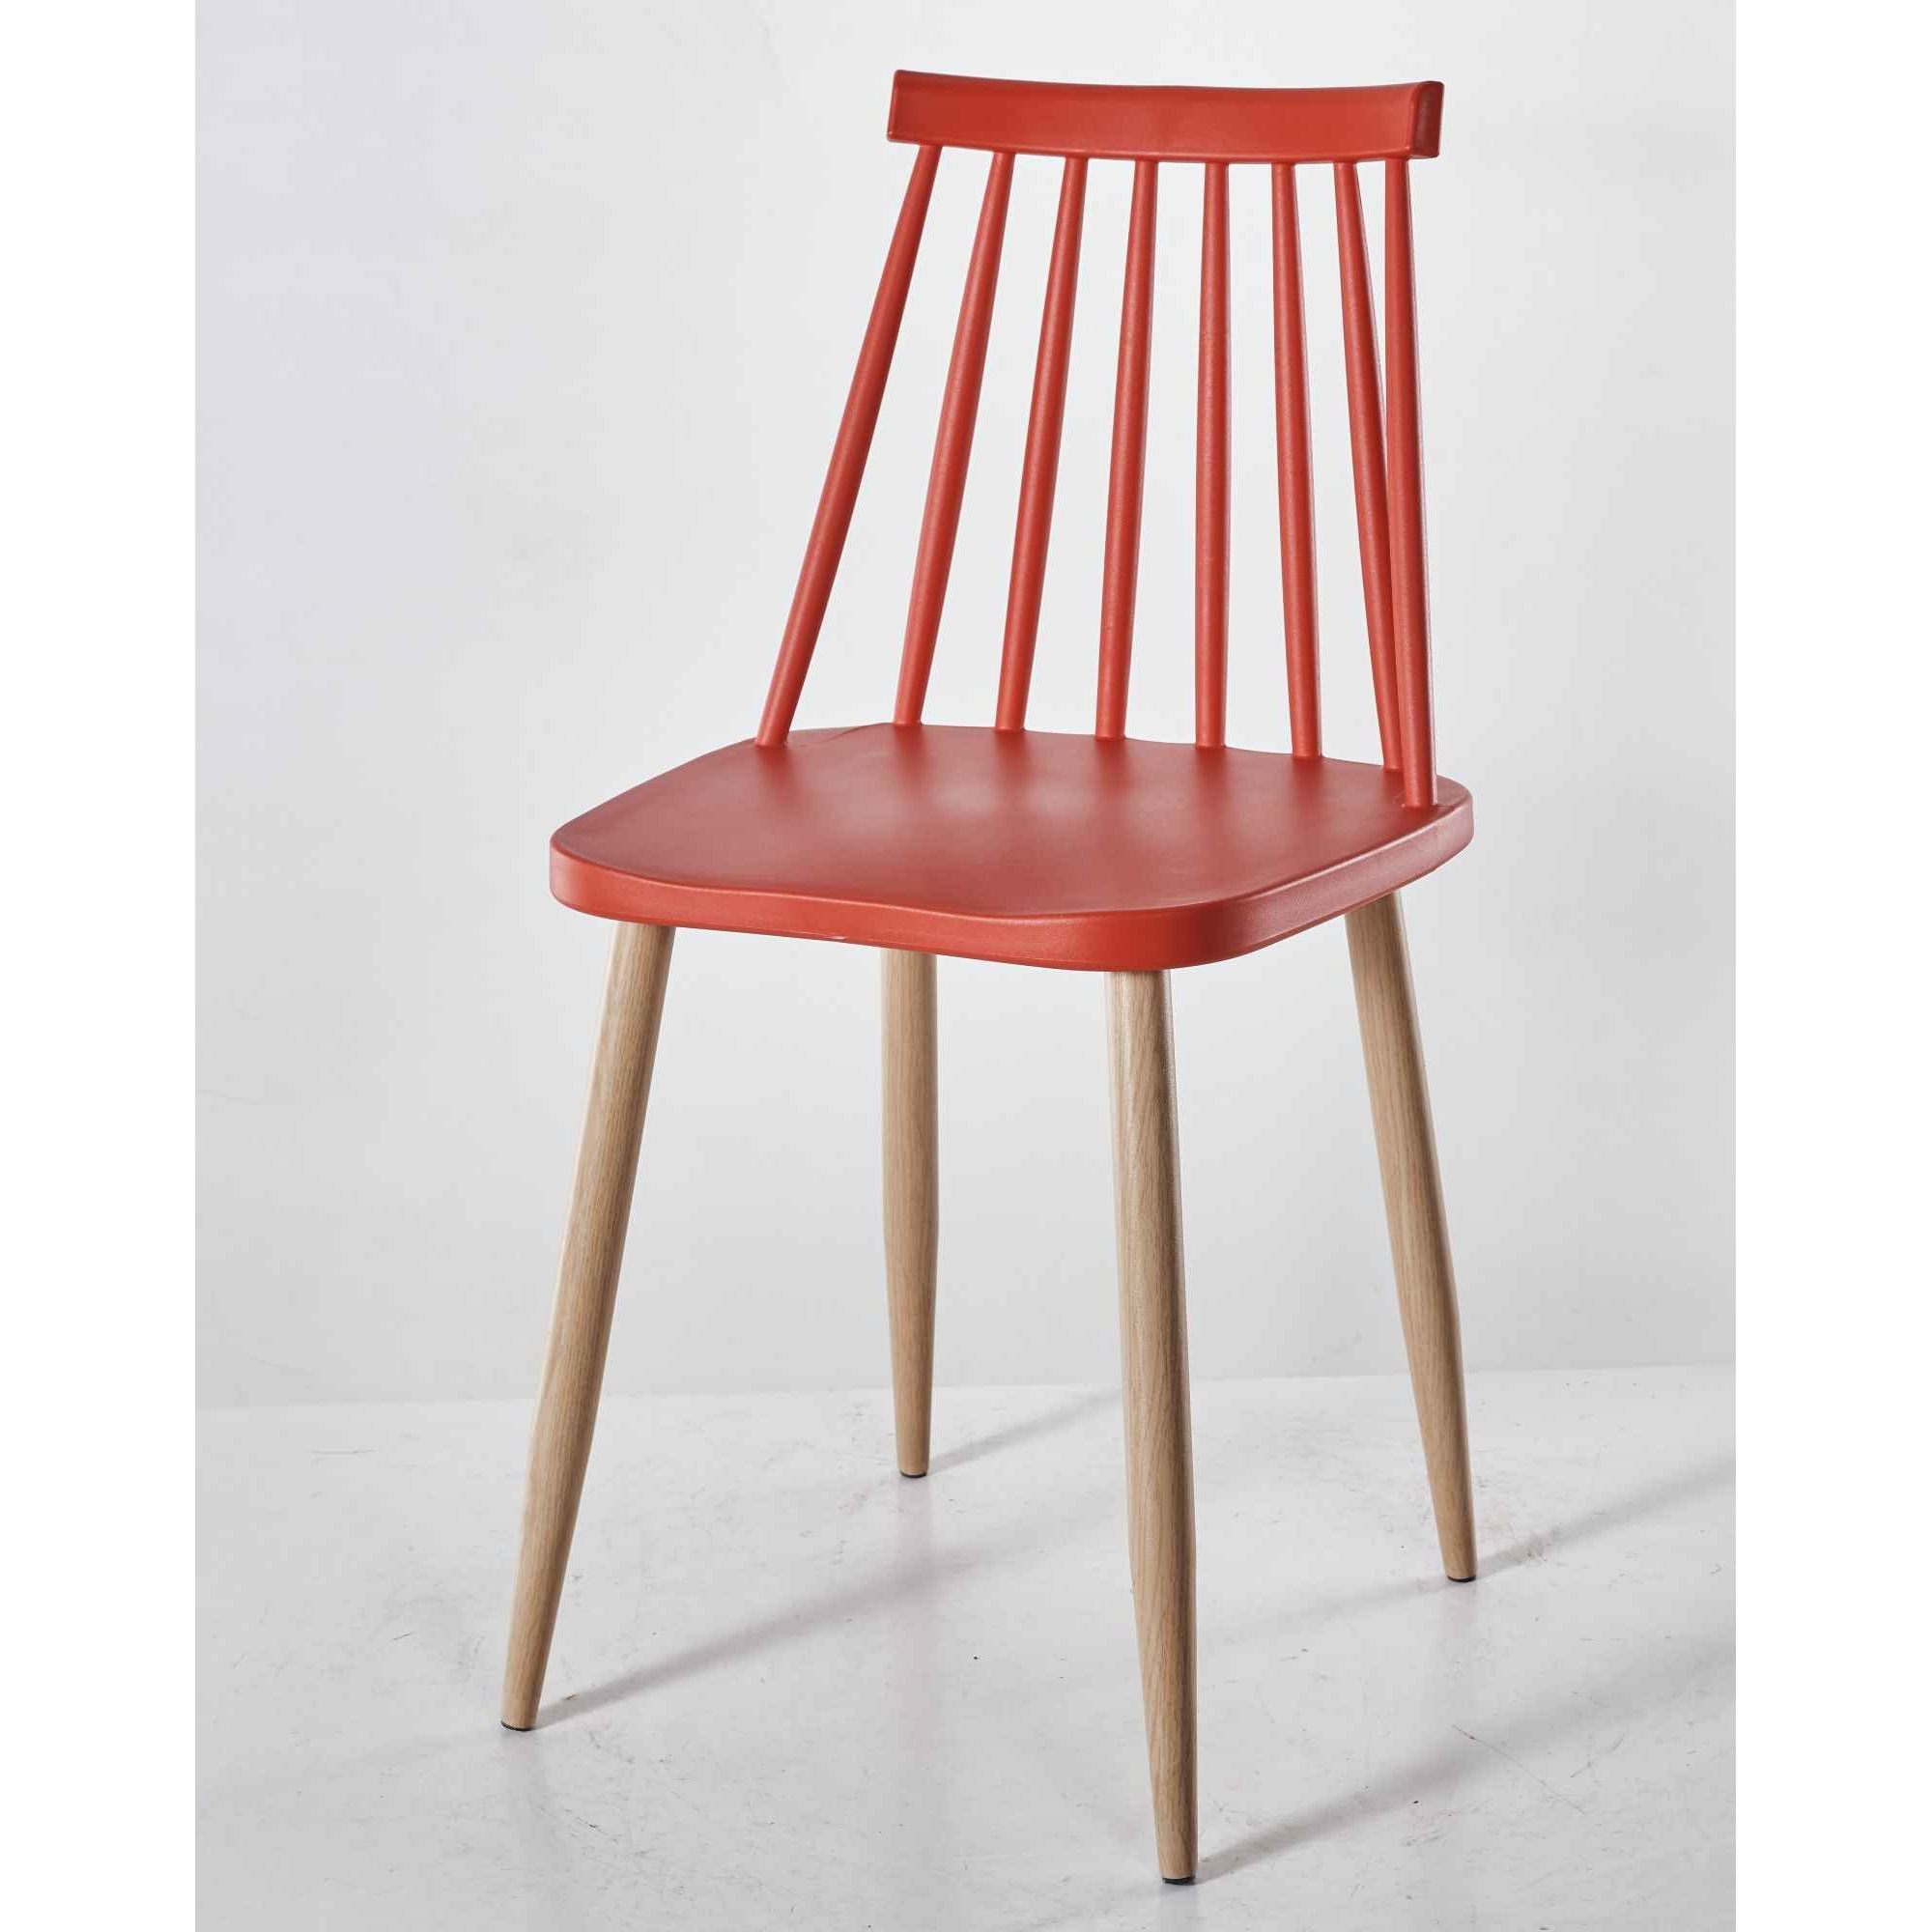 Chaises Scandinaves Couleur Deco In Paris 5 Lot De 4 Chaises Scandinaves Rouge Berta